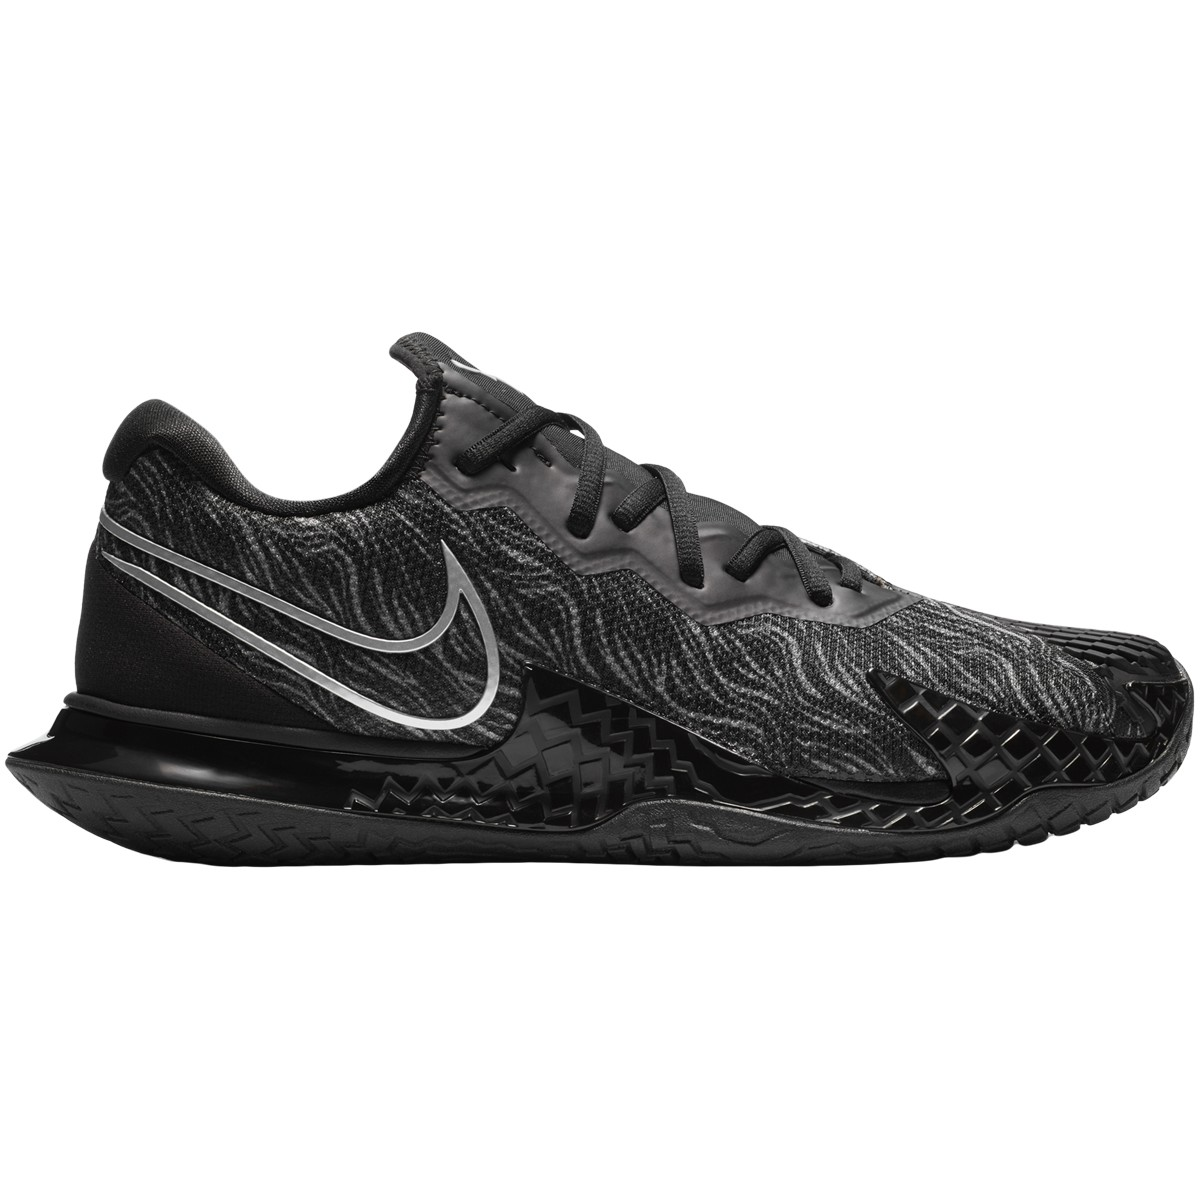 NIKE AIR ZOOM VAPOR CAGE 4 RAFA/ TIGER WOODS ALL COURT SHOES